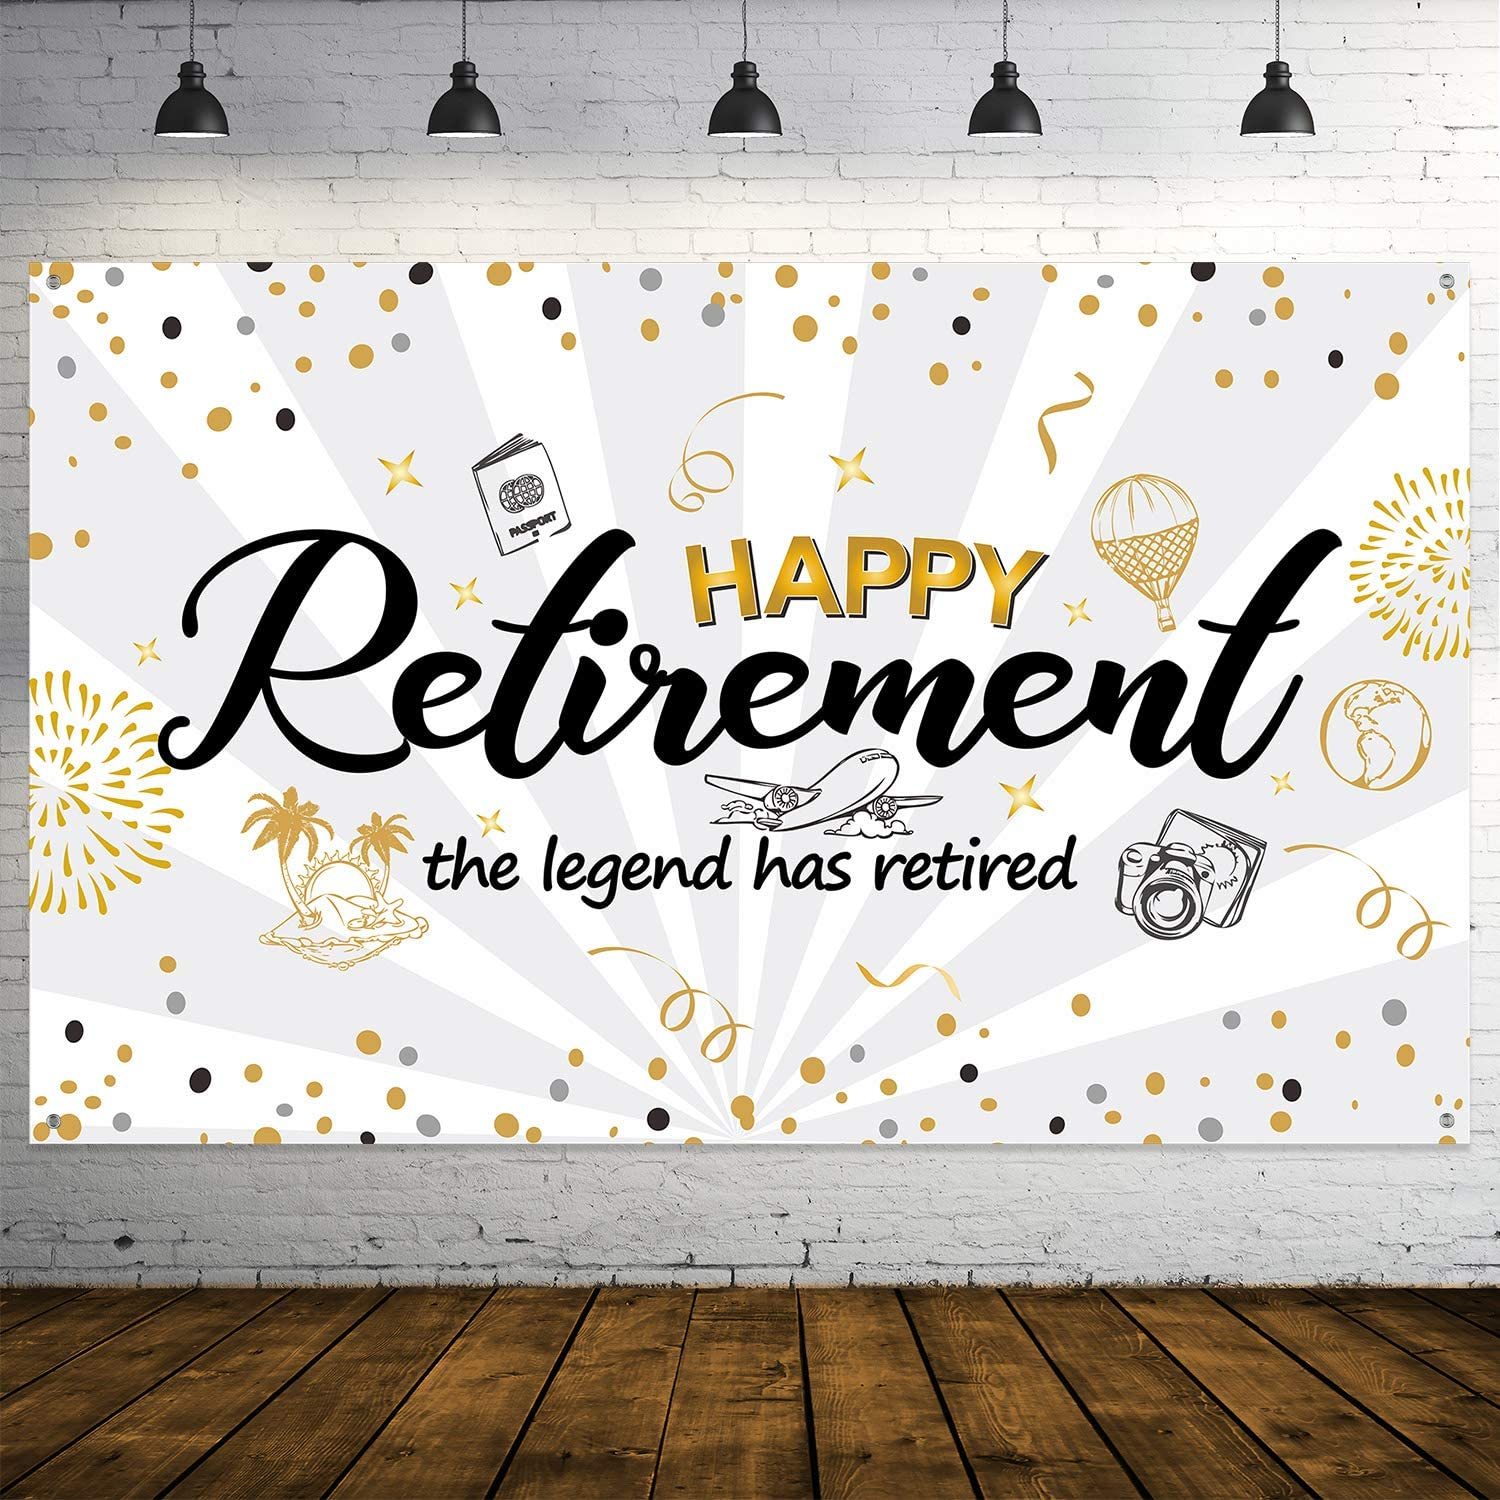 Happy Retirement Banner Home Office Party Decoration Washable Photo Props